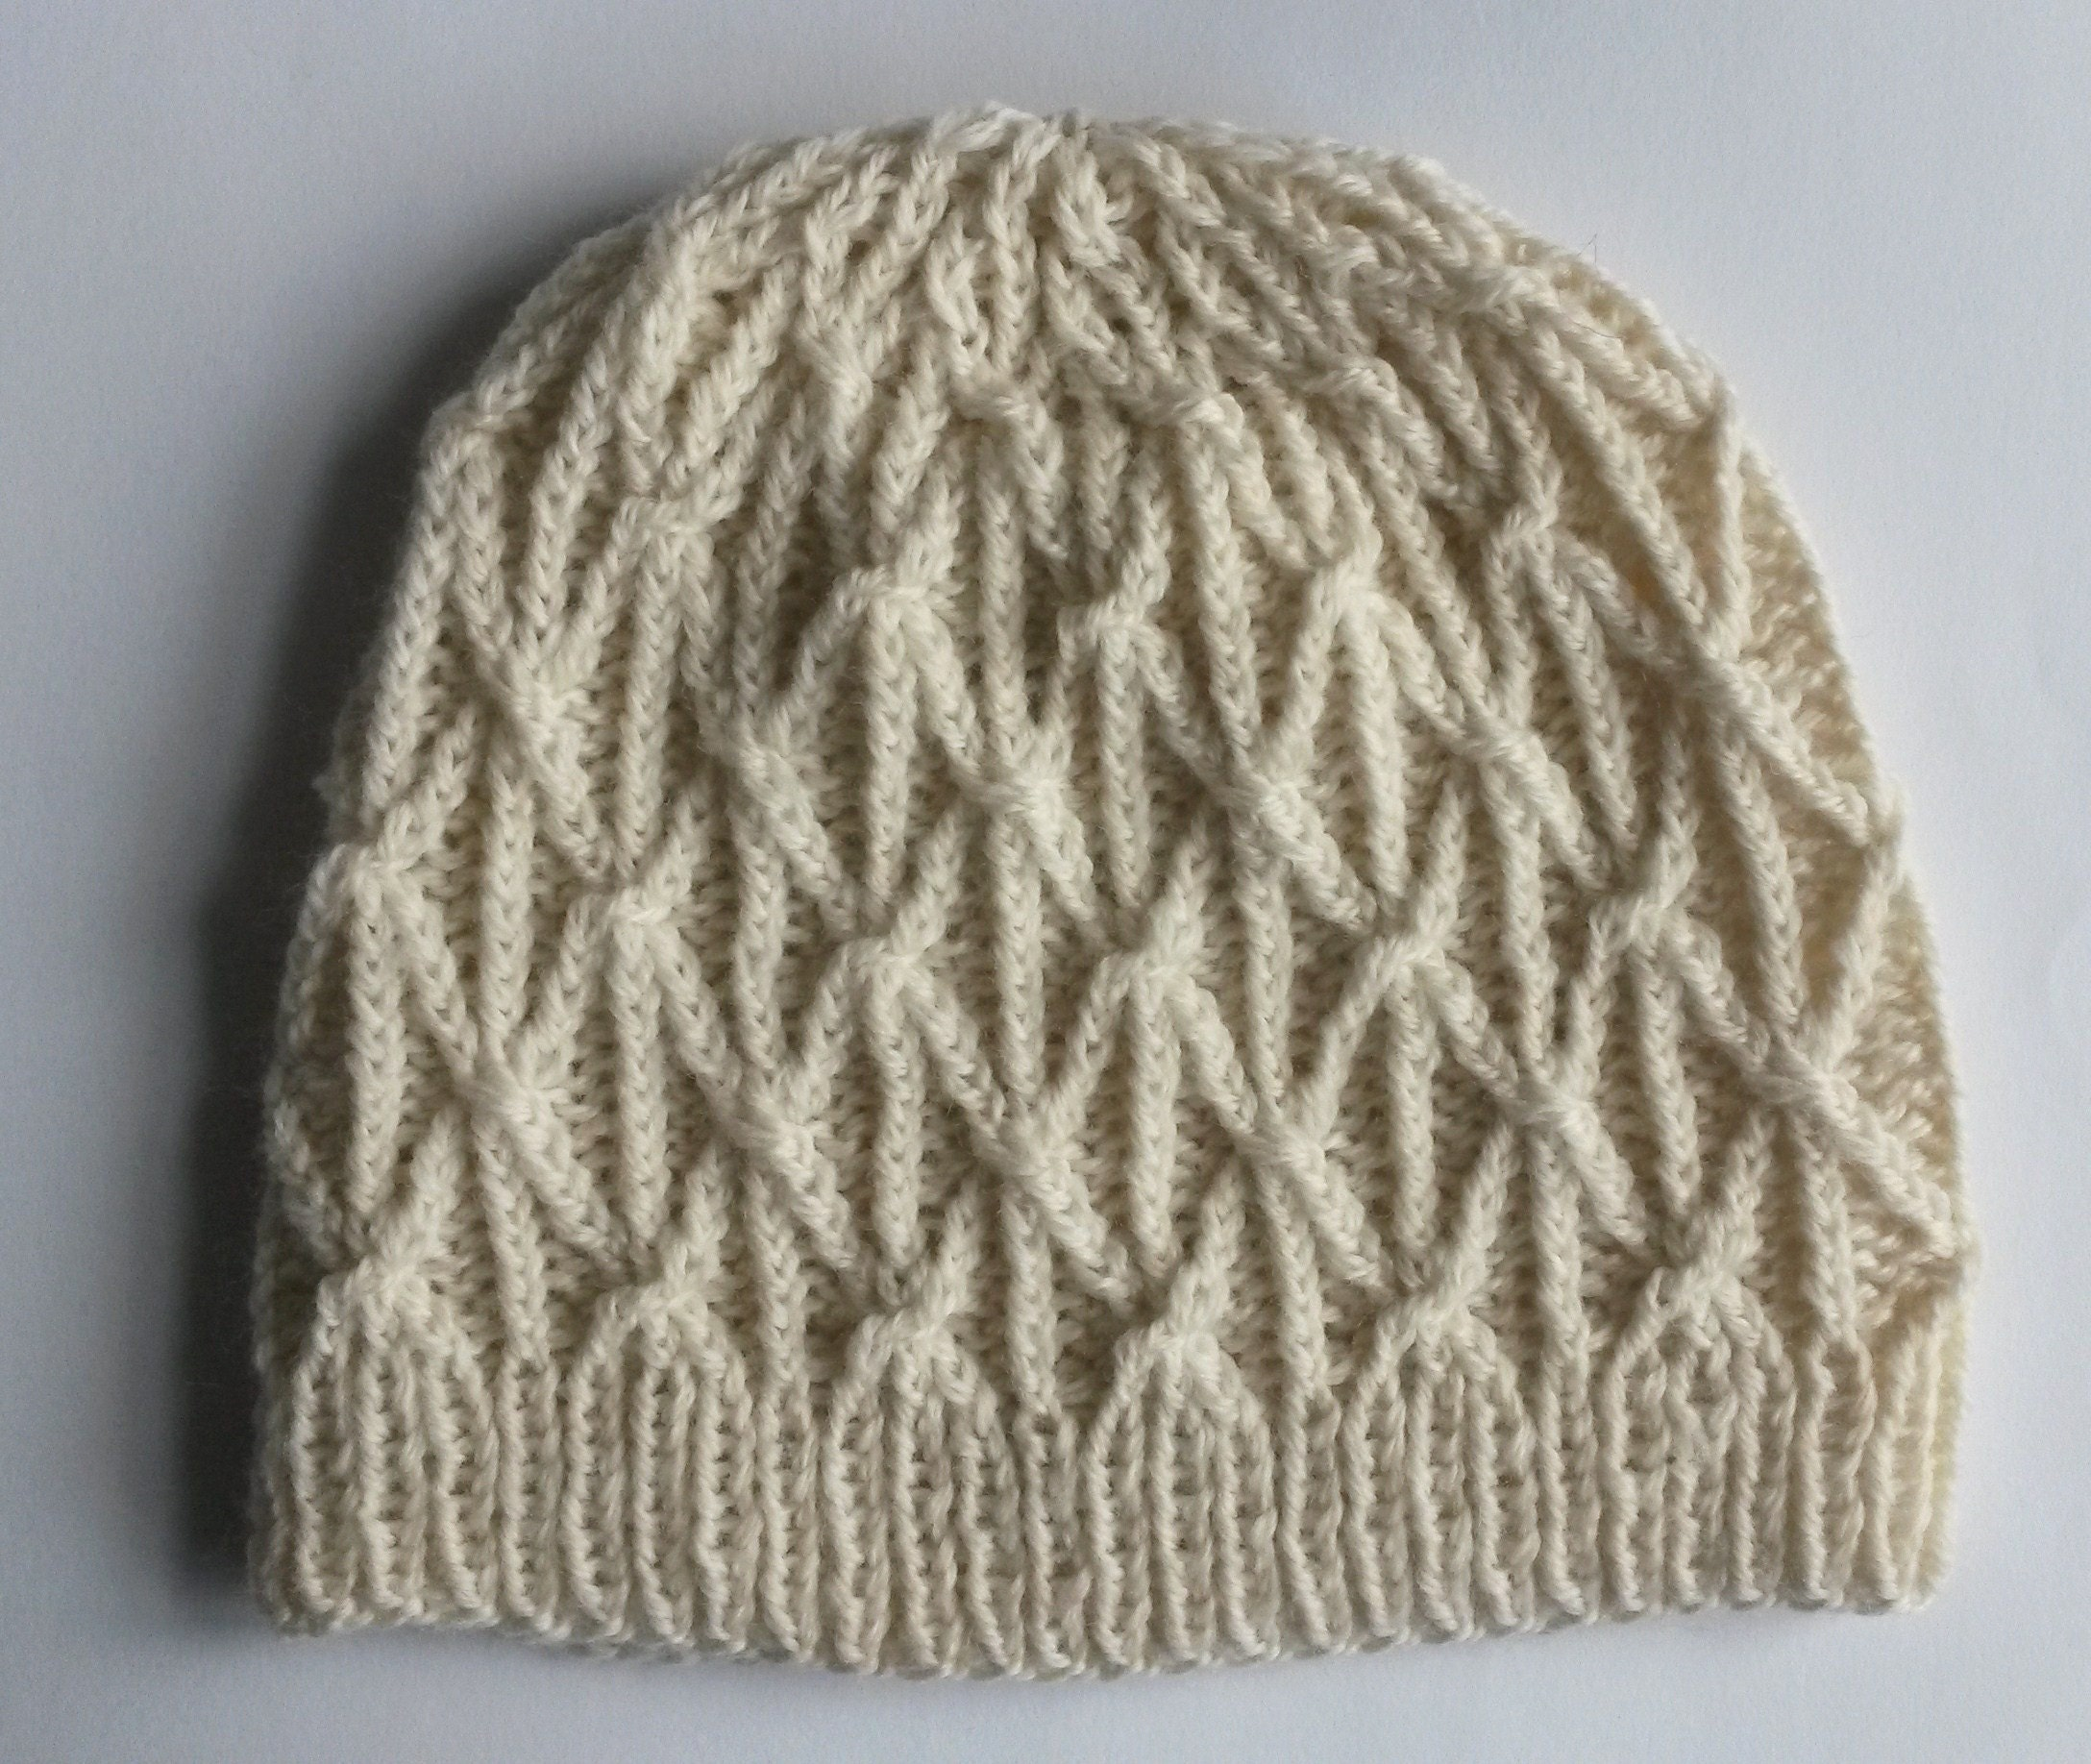 Aran Lattice Beanie in white